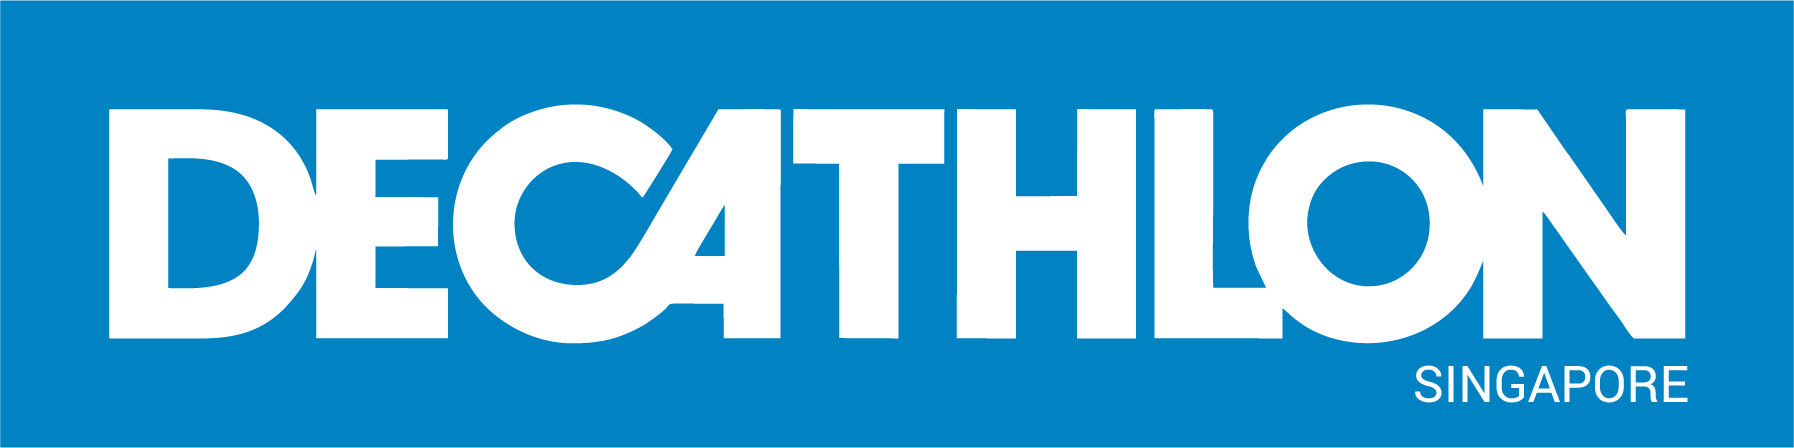 Decathlon Singapore